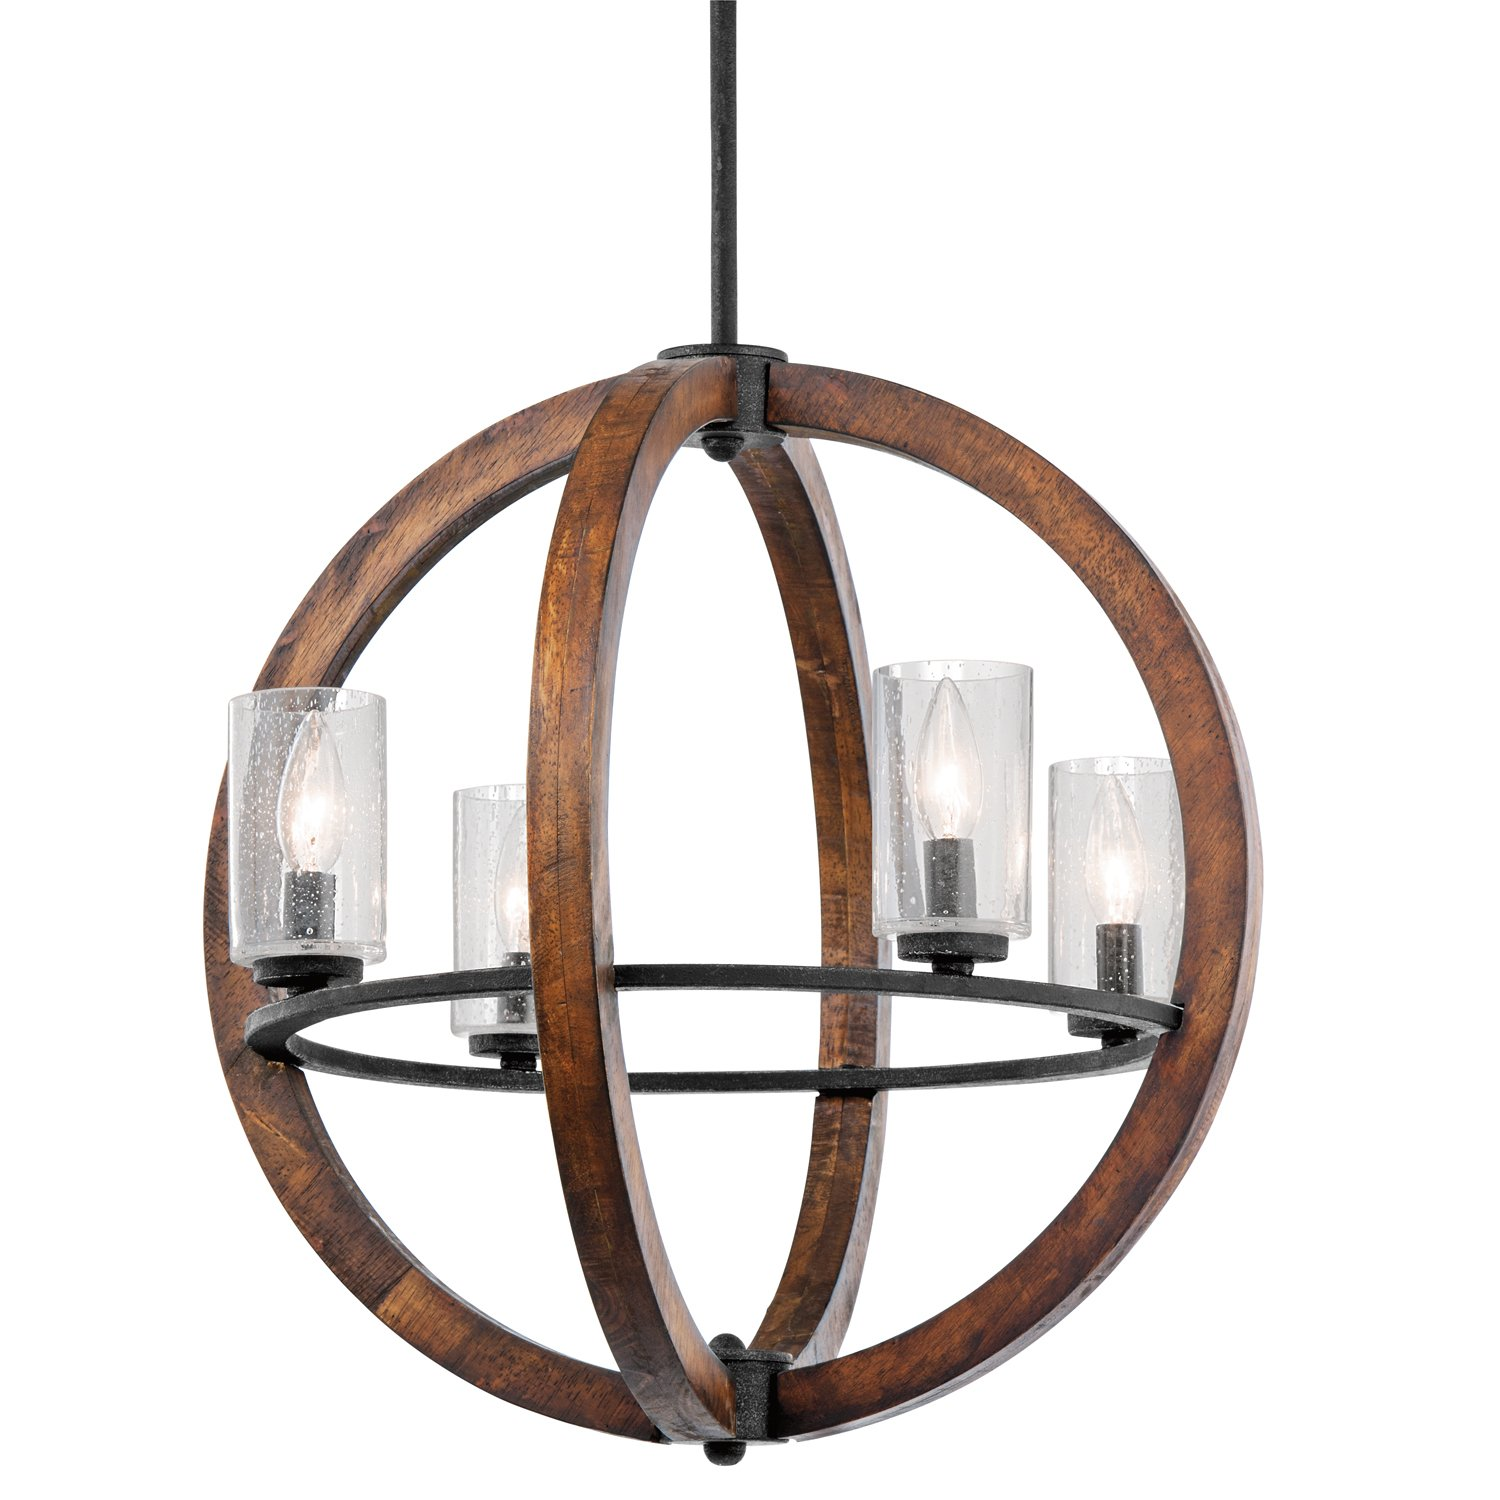 collection inspirations full impressive bronze of armstrong lighting photo chandelier fixtures circolo linear chandeliers size in kichler olde light